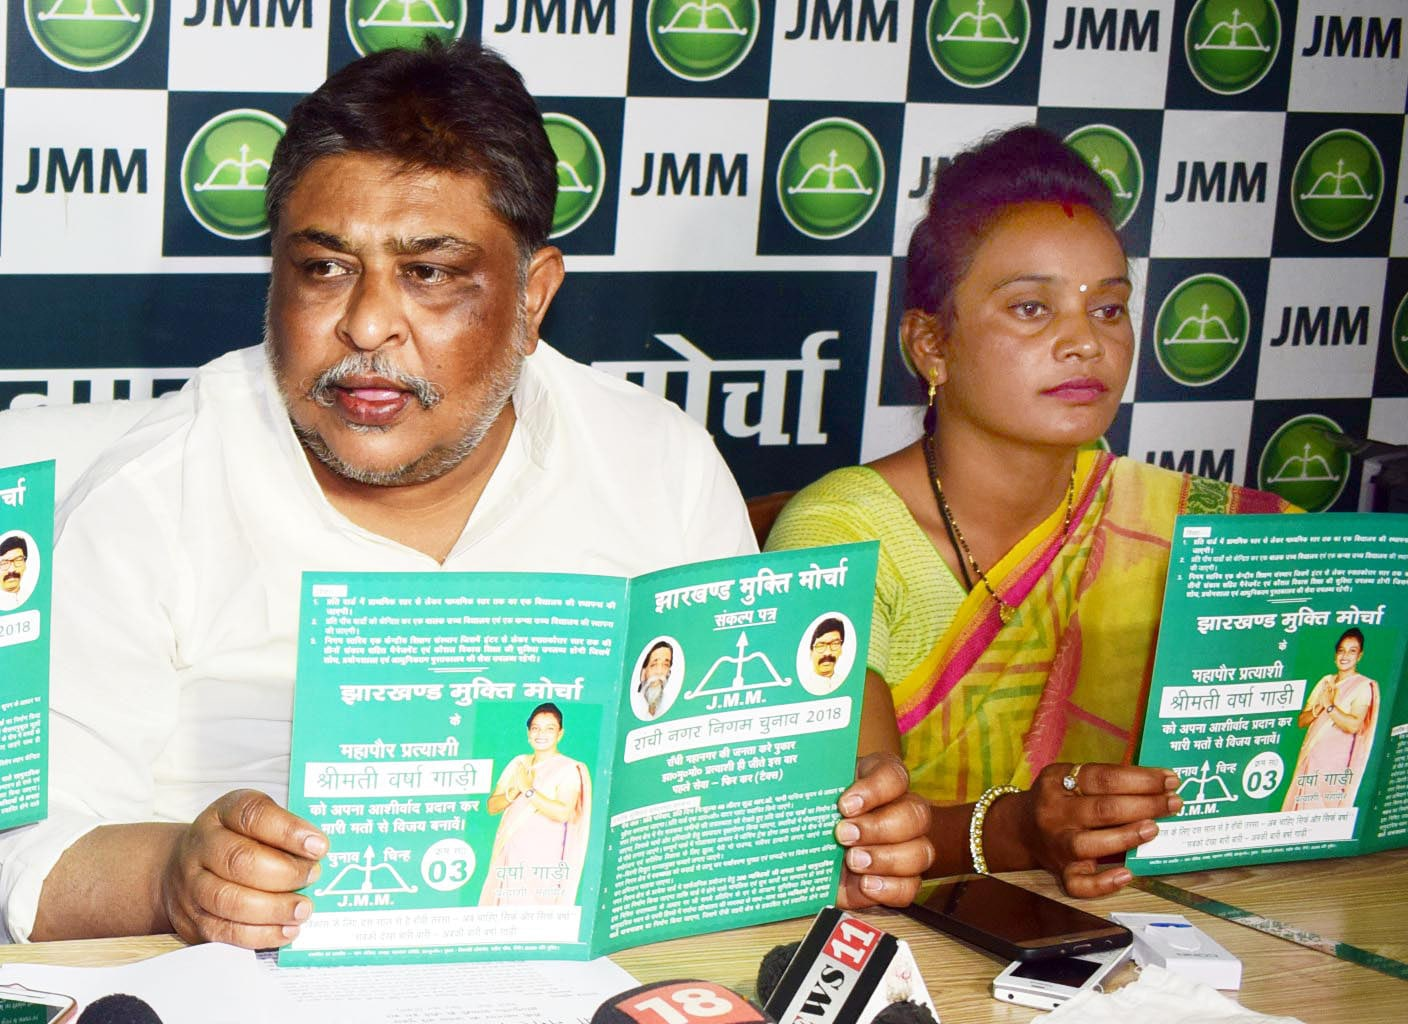 <p>Jharkhand Mukti Morcha (JMM) &nbsp;Central Secretary General and Spokesperson Suprio Bhattacharji along with party candidate for Mayor Versa Gari releases Municipal Poll-2018 manifesto&nbsp;at&#8230;